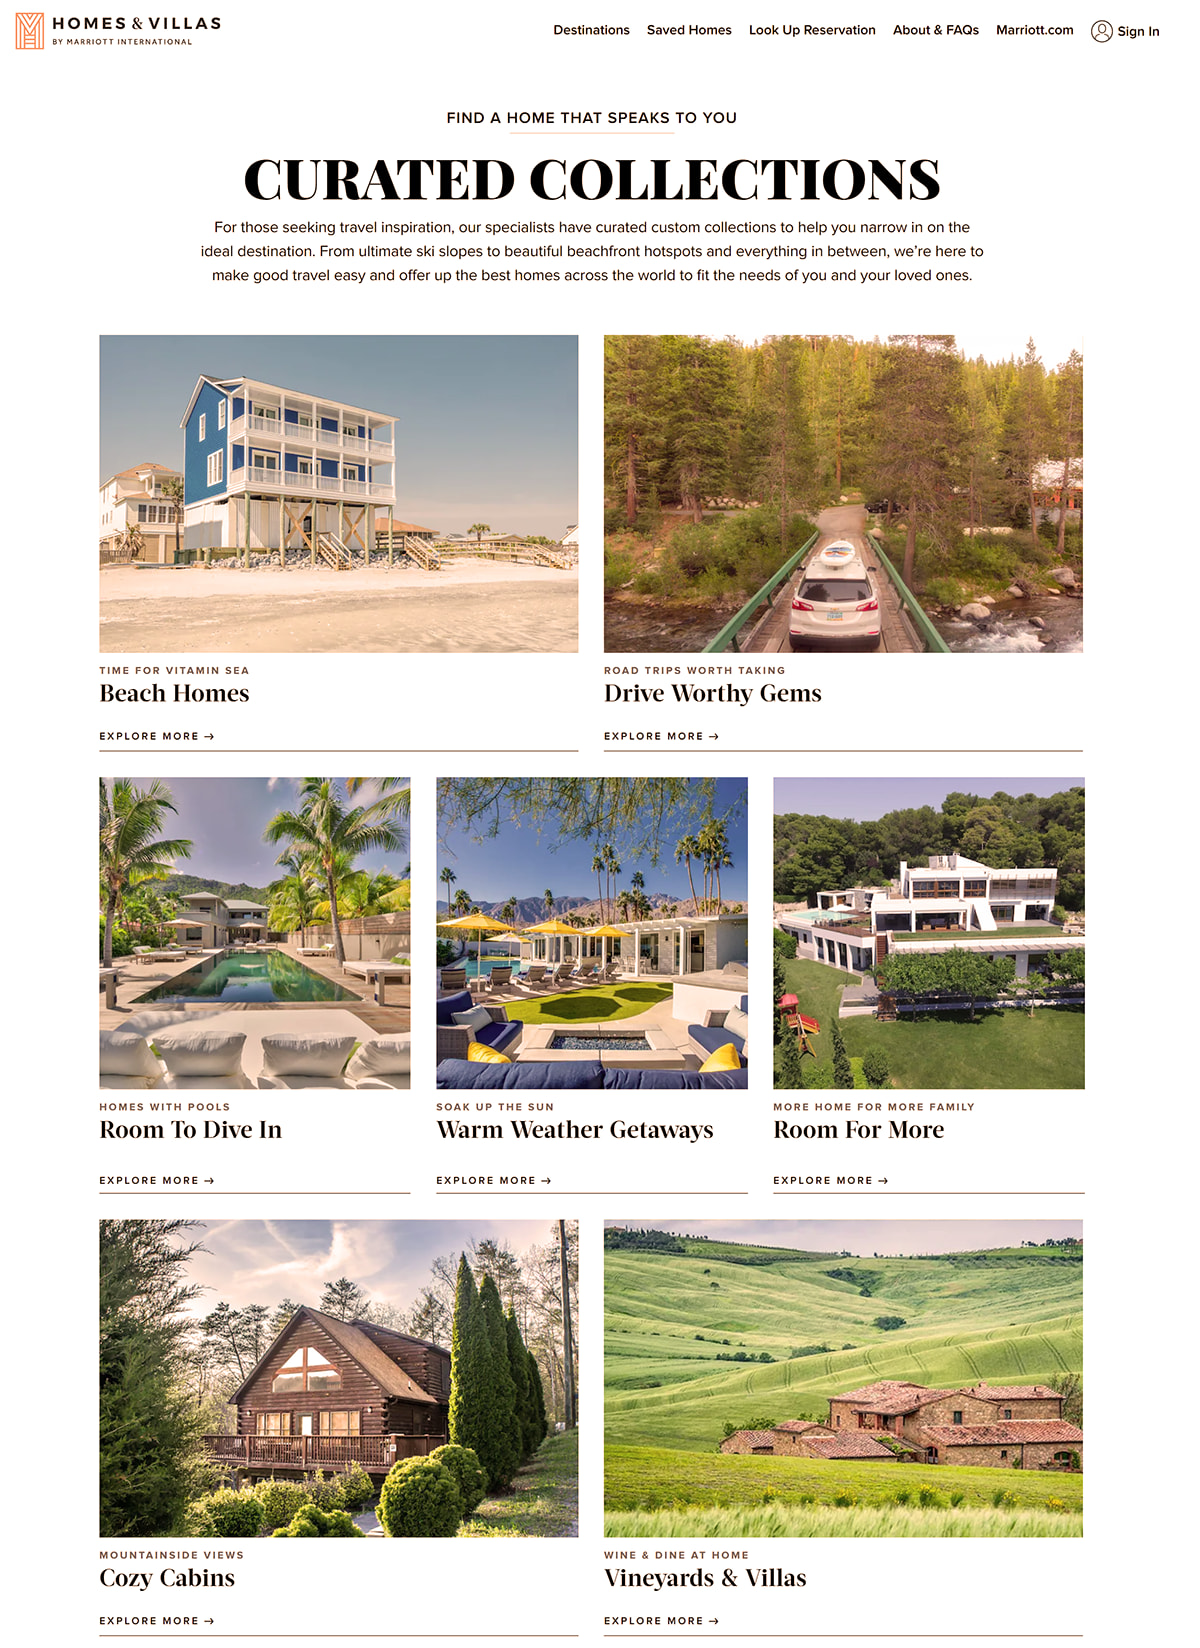 Homes and Villas by Marriott